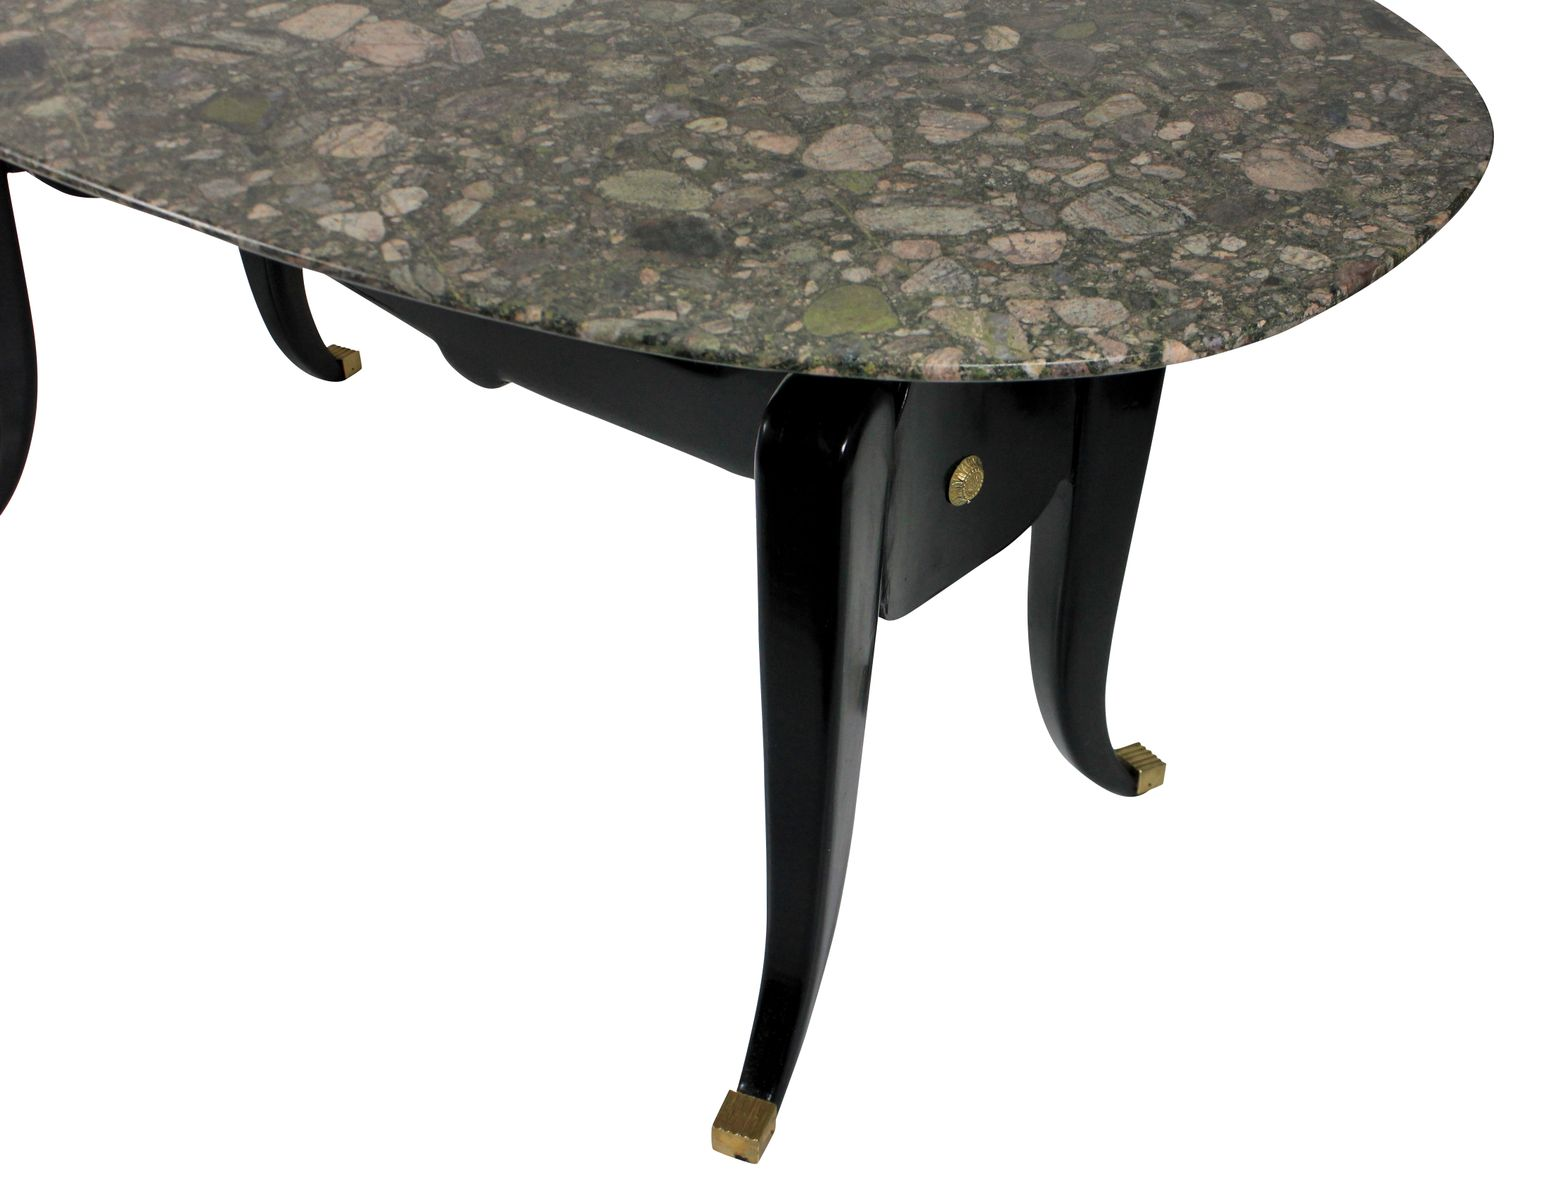 Italian marble top dining table 1950s for sale at pamono for Marble table tops for sale